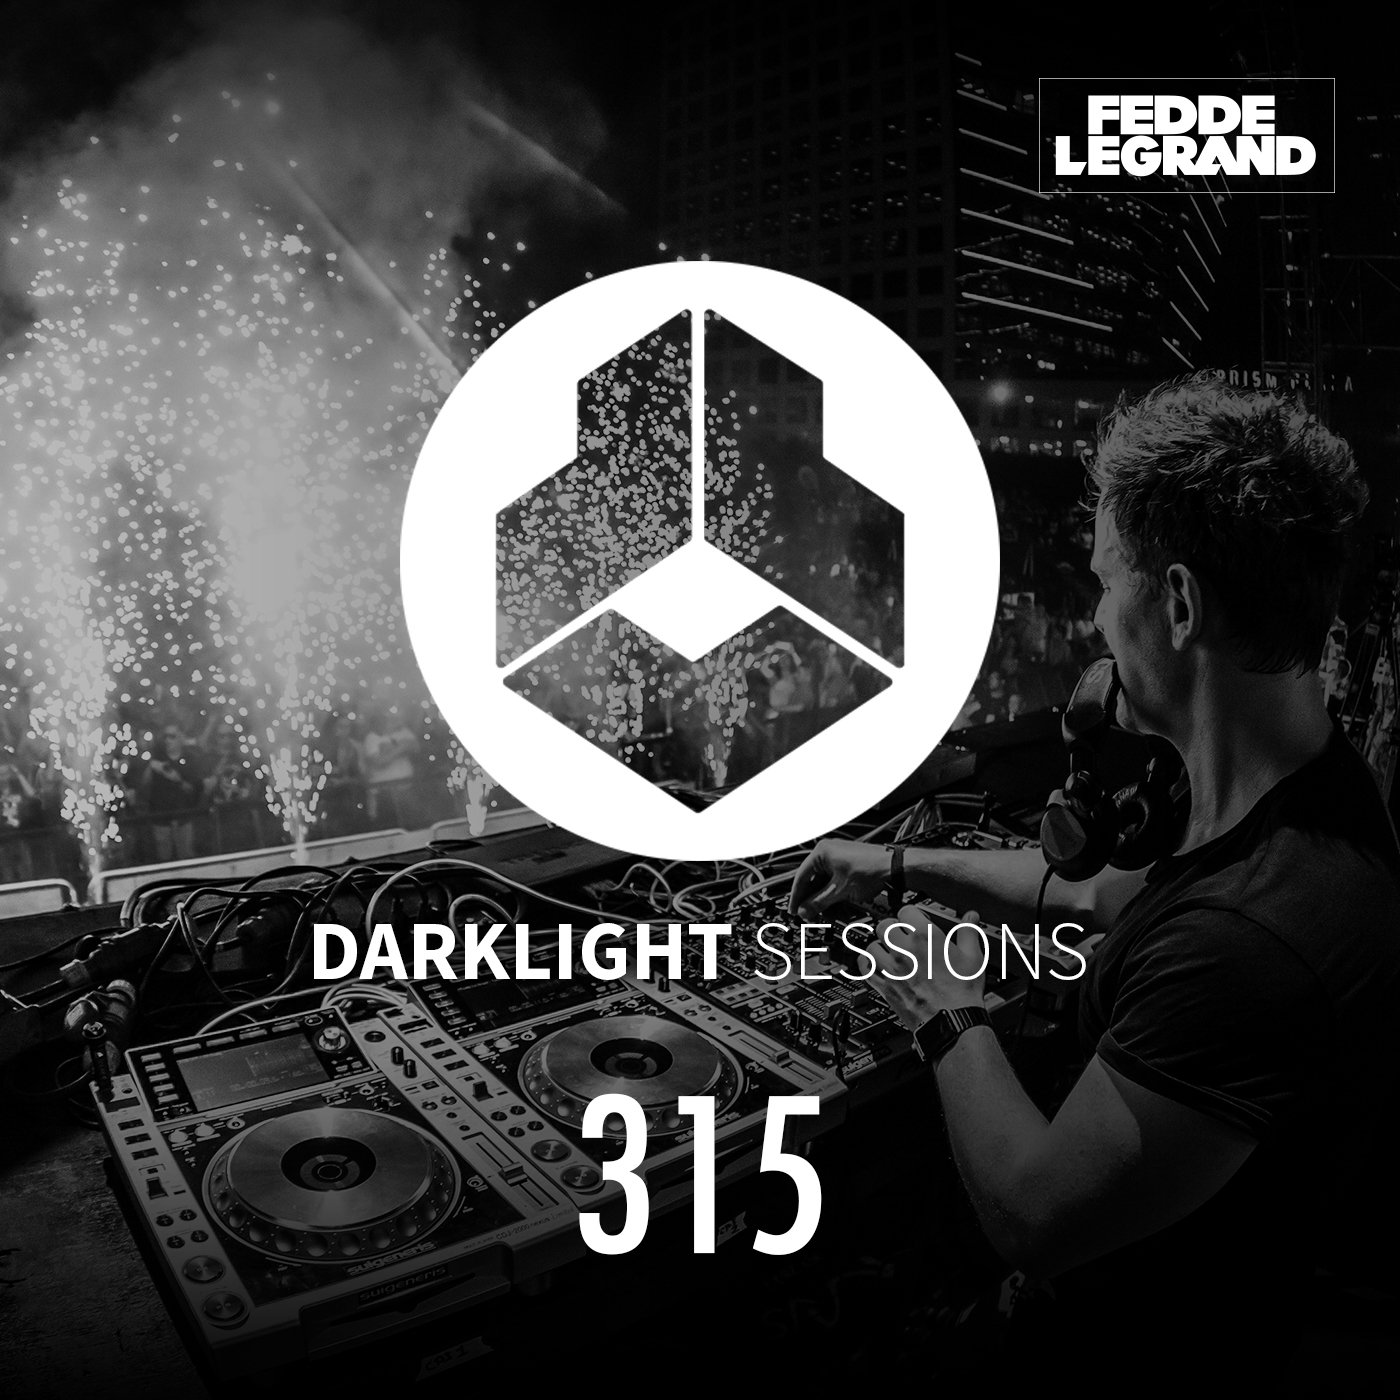 Darklight Sessions 315